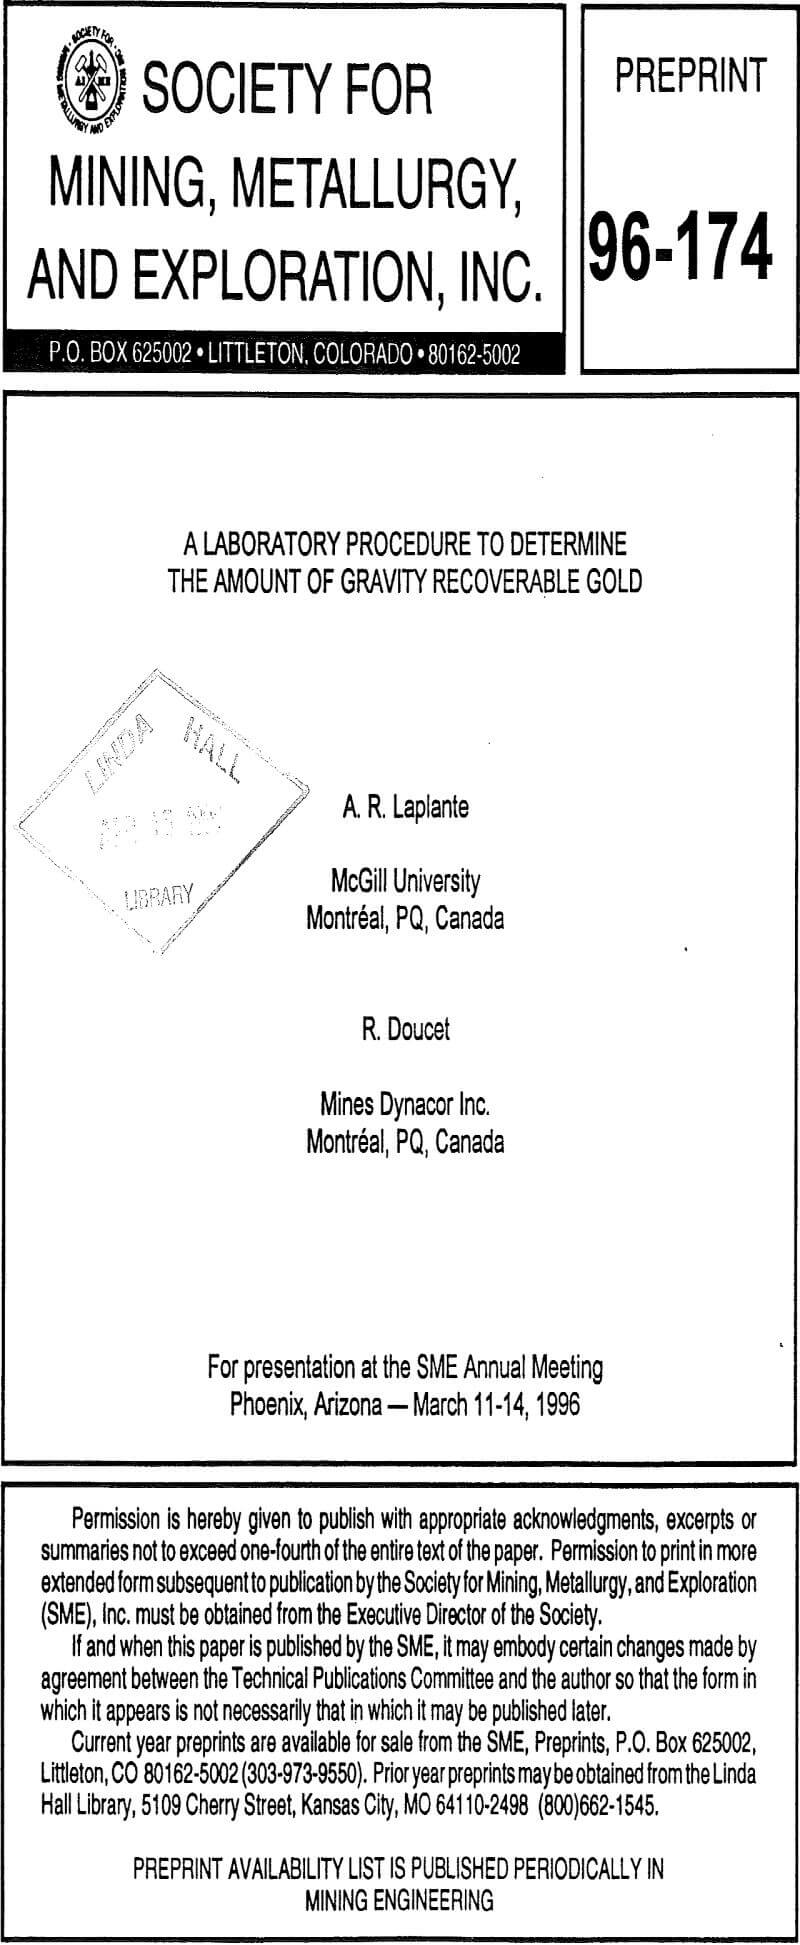 a laboratory procedure to determine the amount of gravity recoverable gold